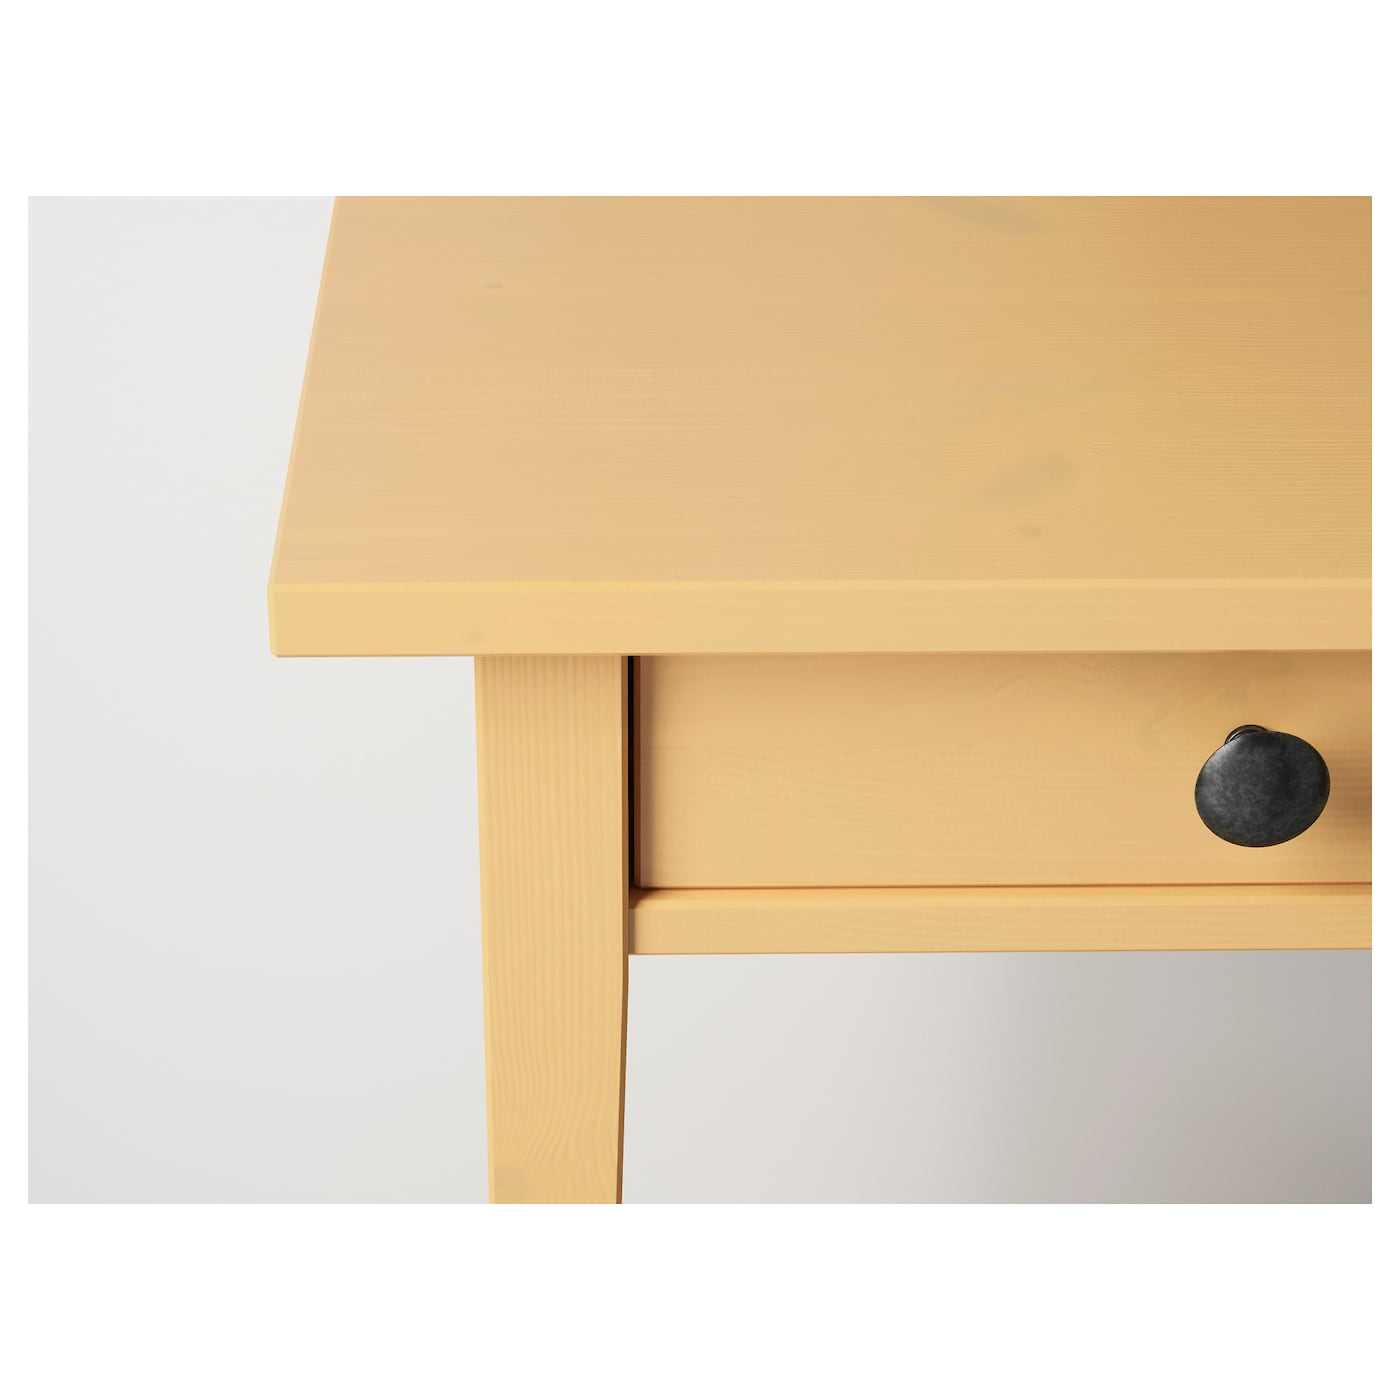 IKEA HEMNES bedside table Made of solid wood, which is a hardwearing and warm natural material.